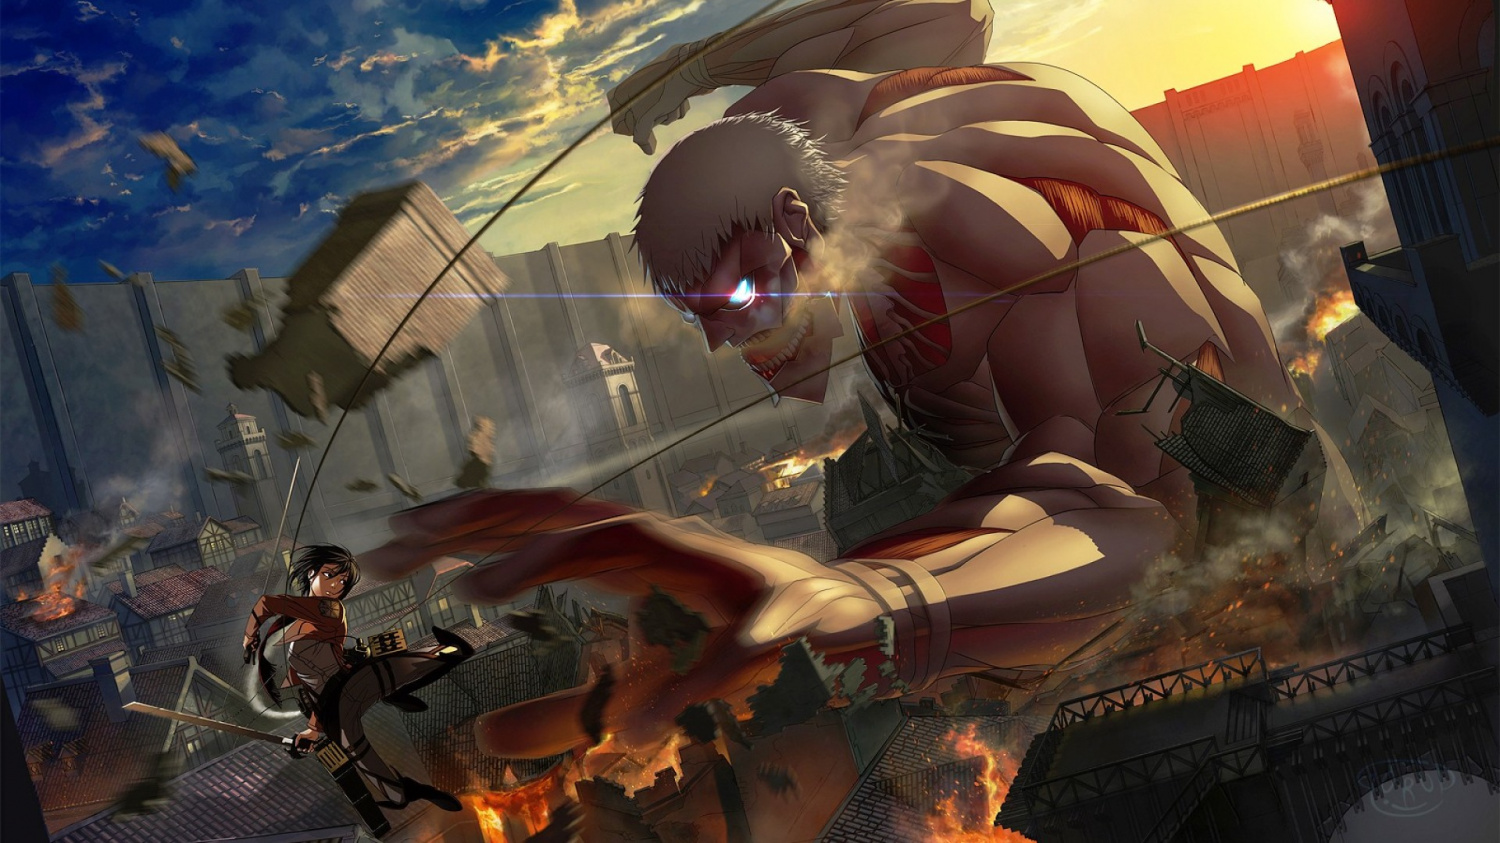 Attack on Titan Chapter 137 Theories and Predictions